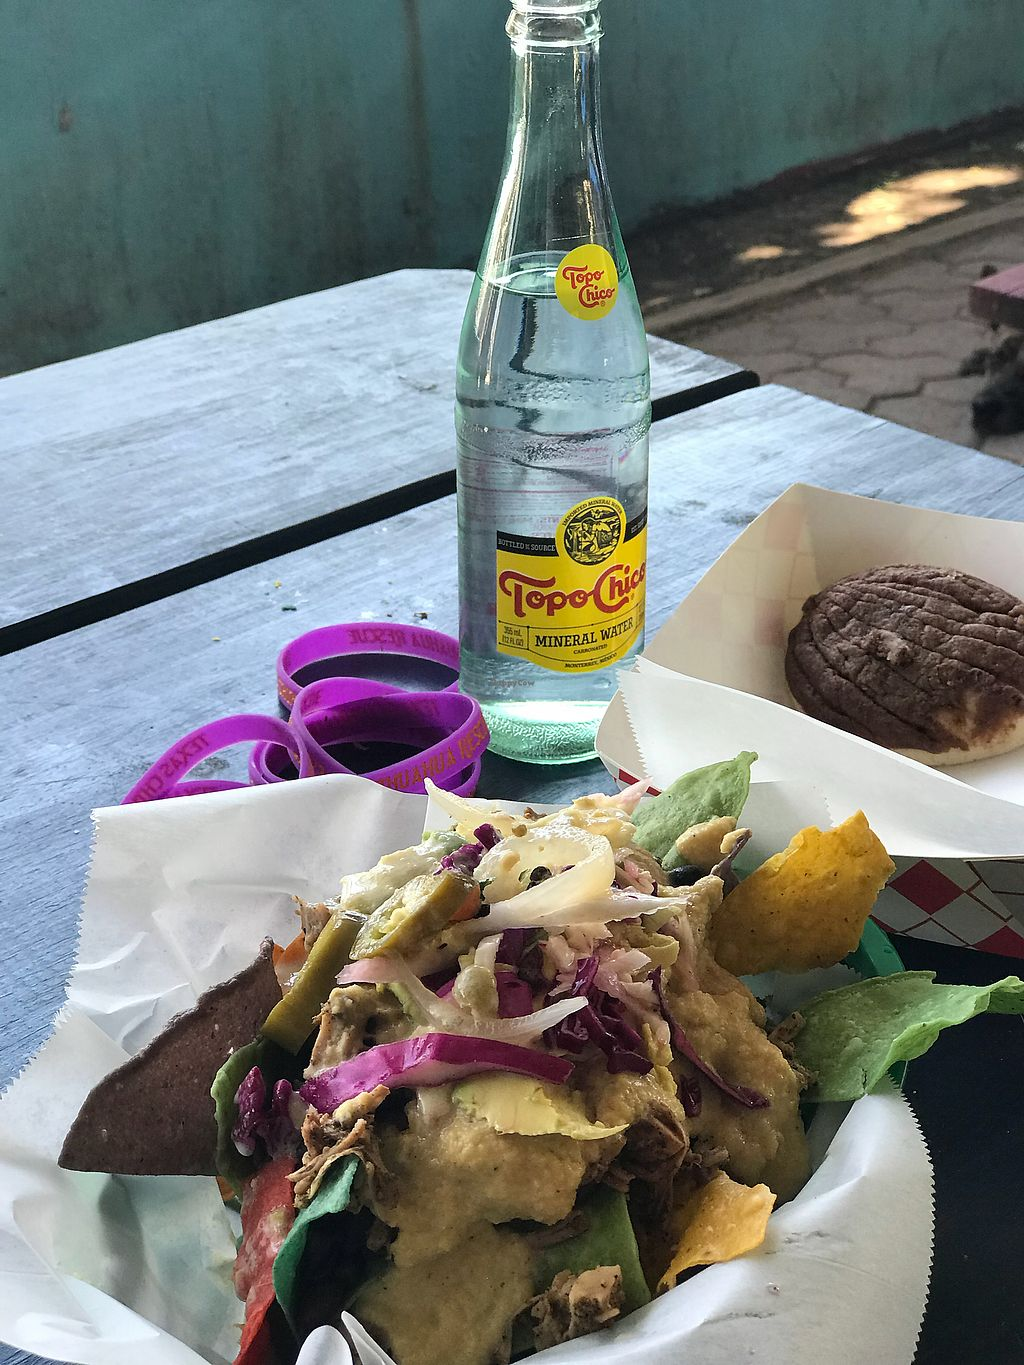 "Photo of La Botanica  by <a href=""/members/profile/modelmd"">modelmd</a> <br/>Barbacoa jackfruit nachos and concha <br/> April 15, 2018  - <a href='/contact/abuse/image/62870/386551'>Report</a>"